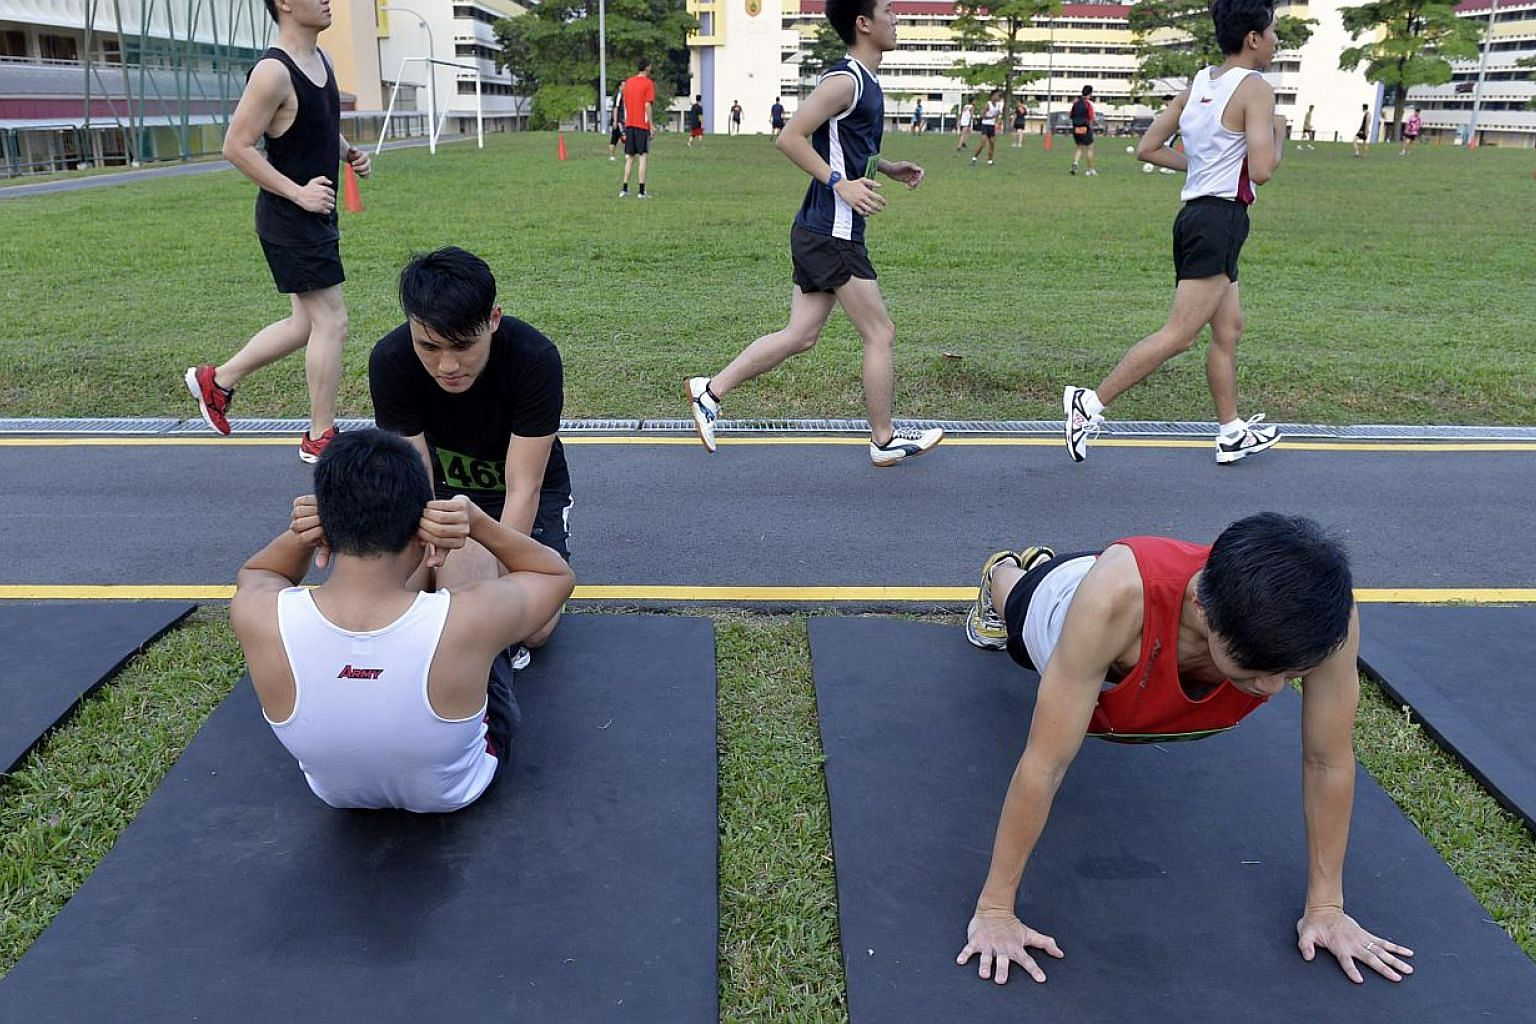 The Singapore Armed Forces (SAF) has shelved boot camp plans for reservist servicemen who skip their mandatory military fitness test three times. -- PHOTO: ST FILE